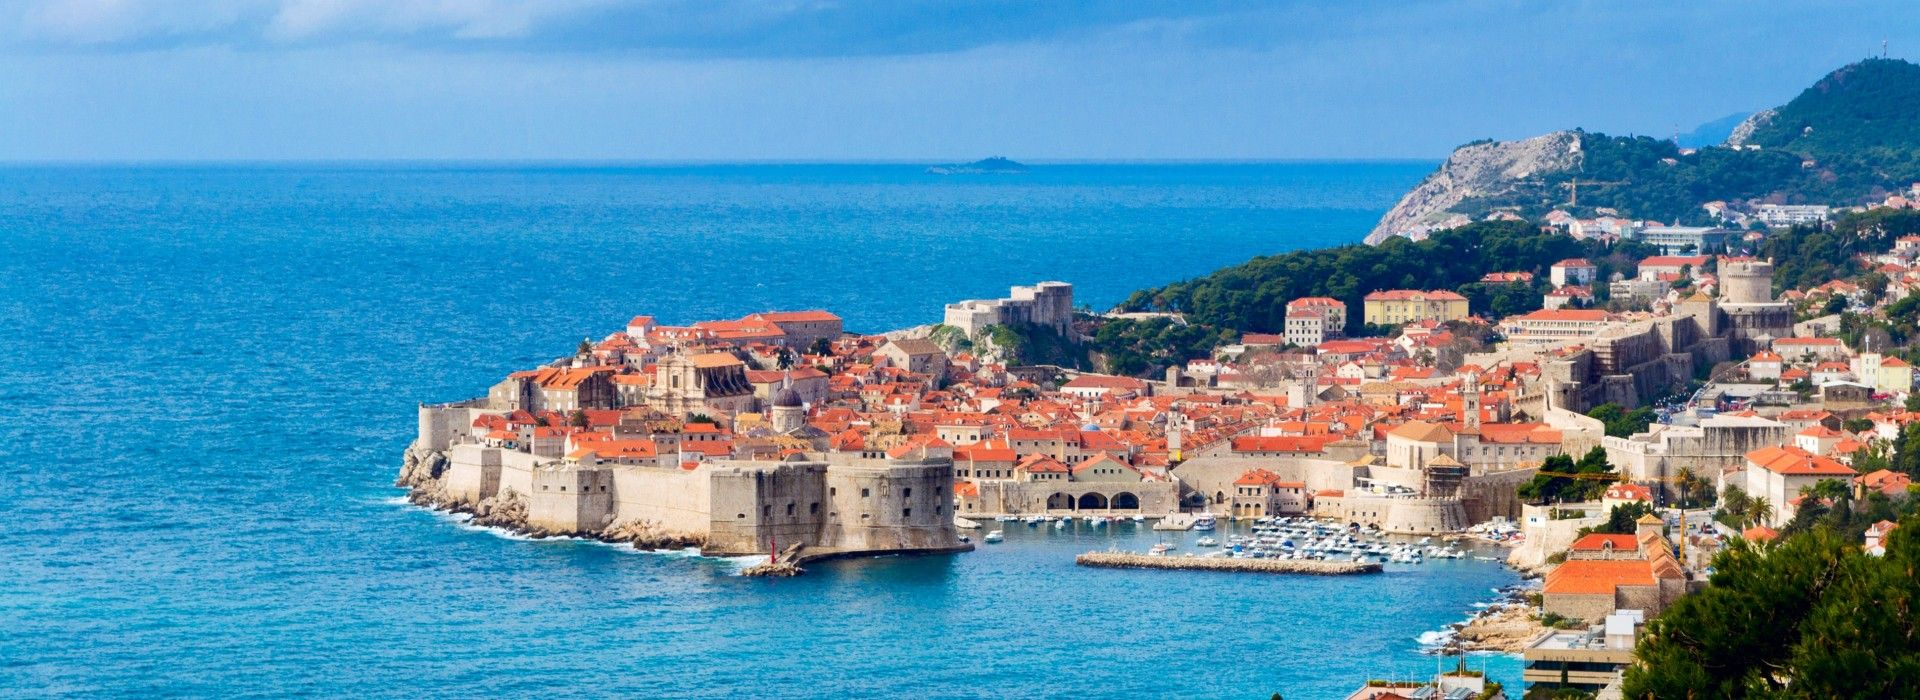 City sightseeing Tours in Dubrovnik